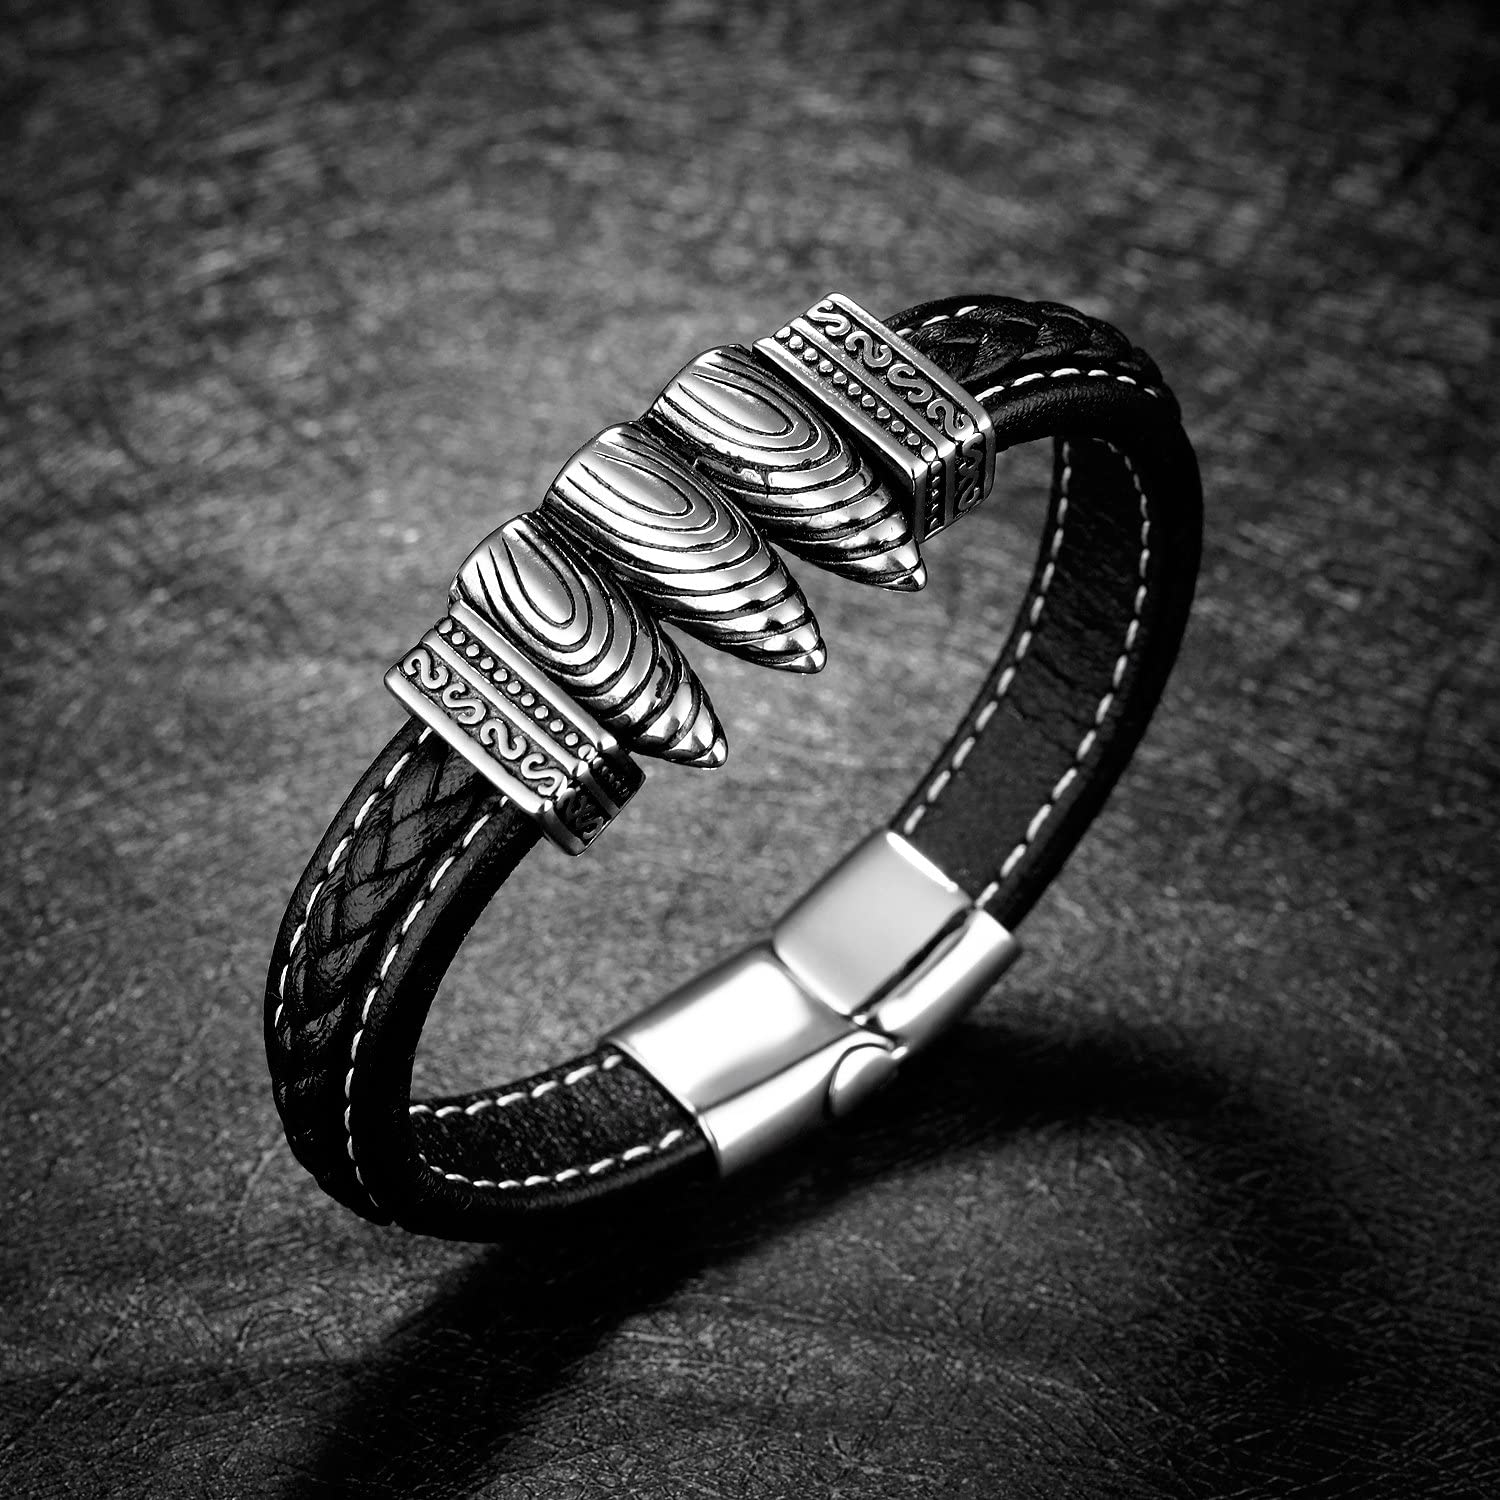 LOHOME Fashion Bracelets Genuine Leather Chain Titanium Bullet Charm With Magnetic Buckle Cuff Bangle for Mens